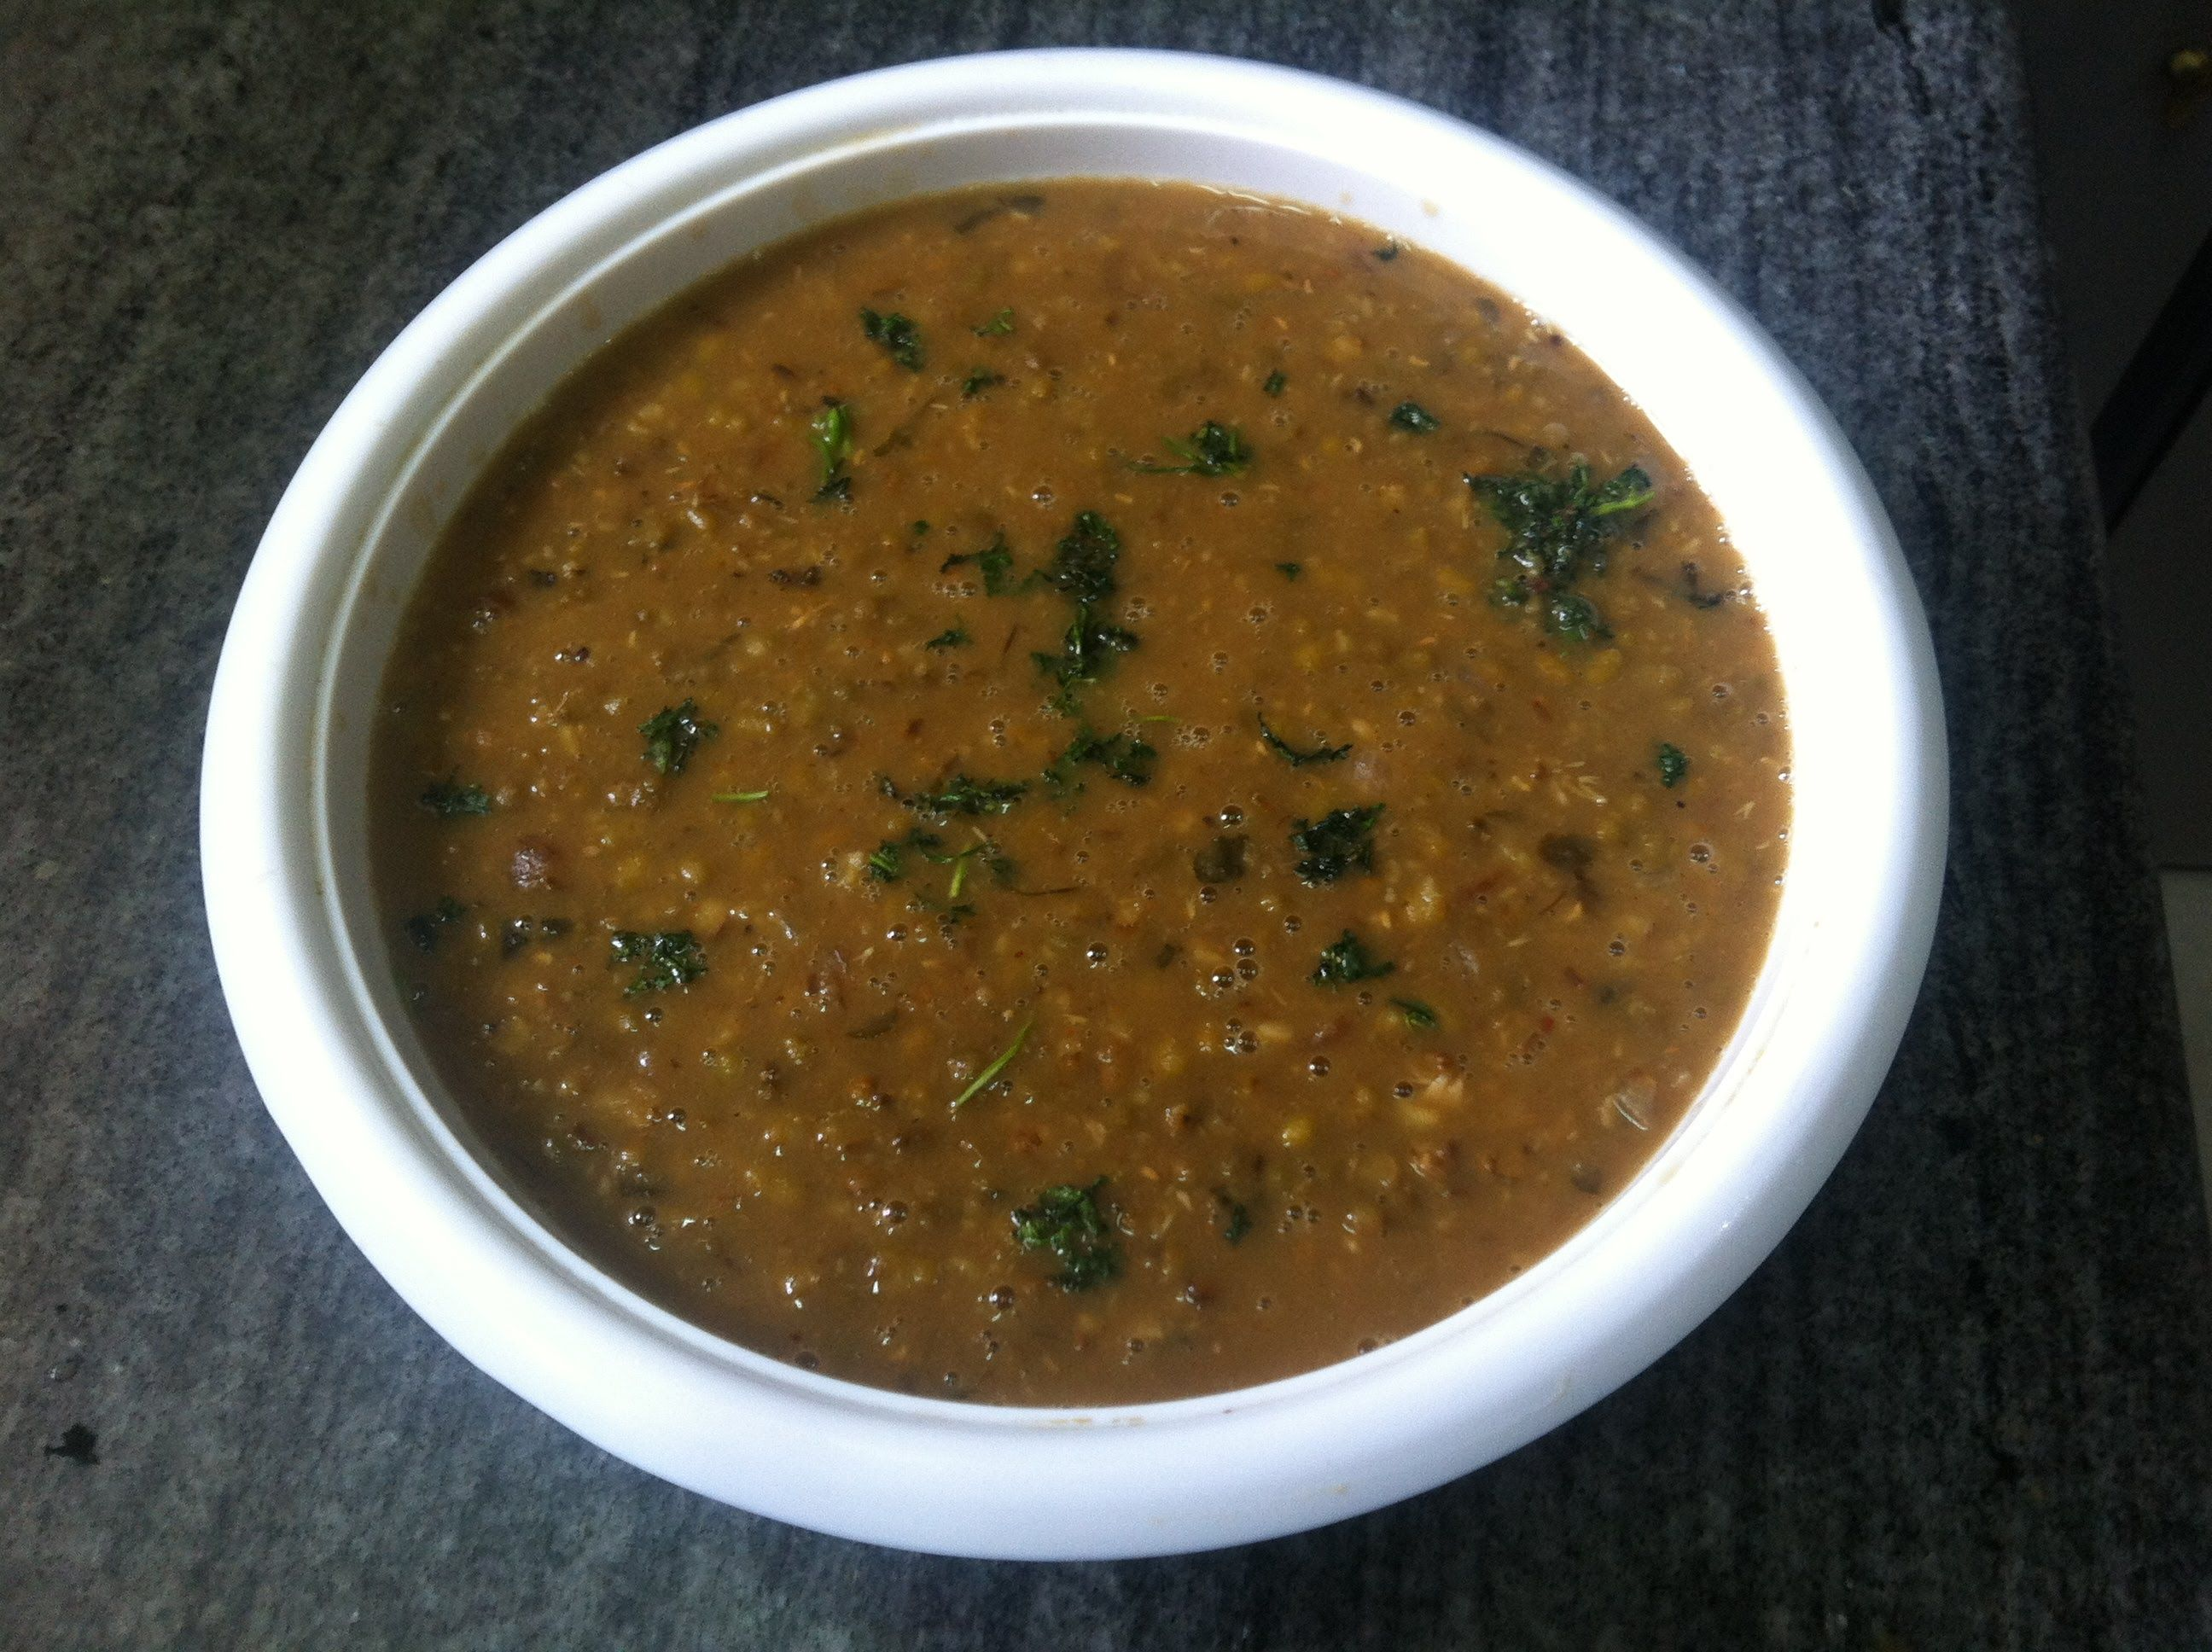 Sabut moong dal recipe whole mung beans recipe indian recipes also called green gram this sabut moong dal whole green mung dal is light and very easy to digest forumfinder Images